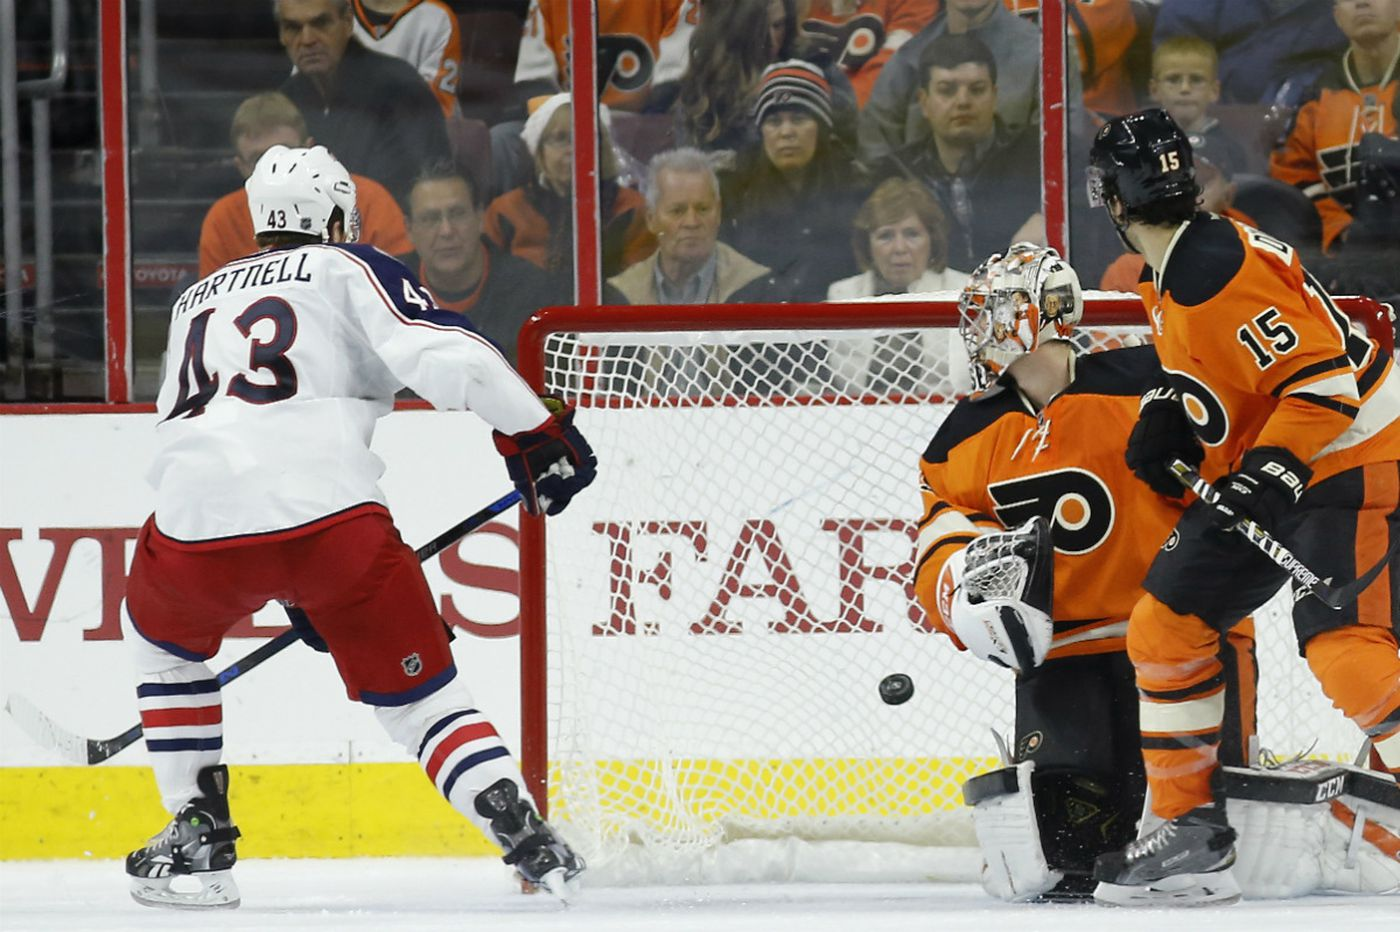 Flyers fall to Blue Jackets, ending four-game winning streak